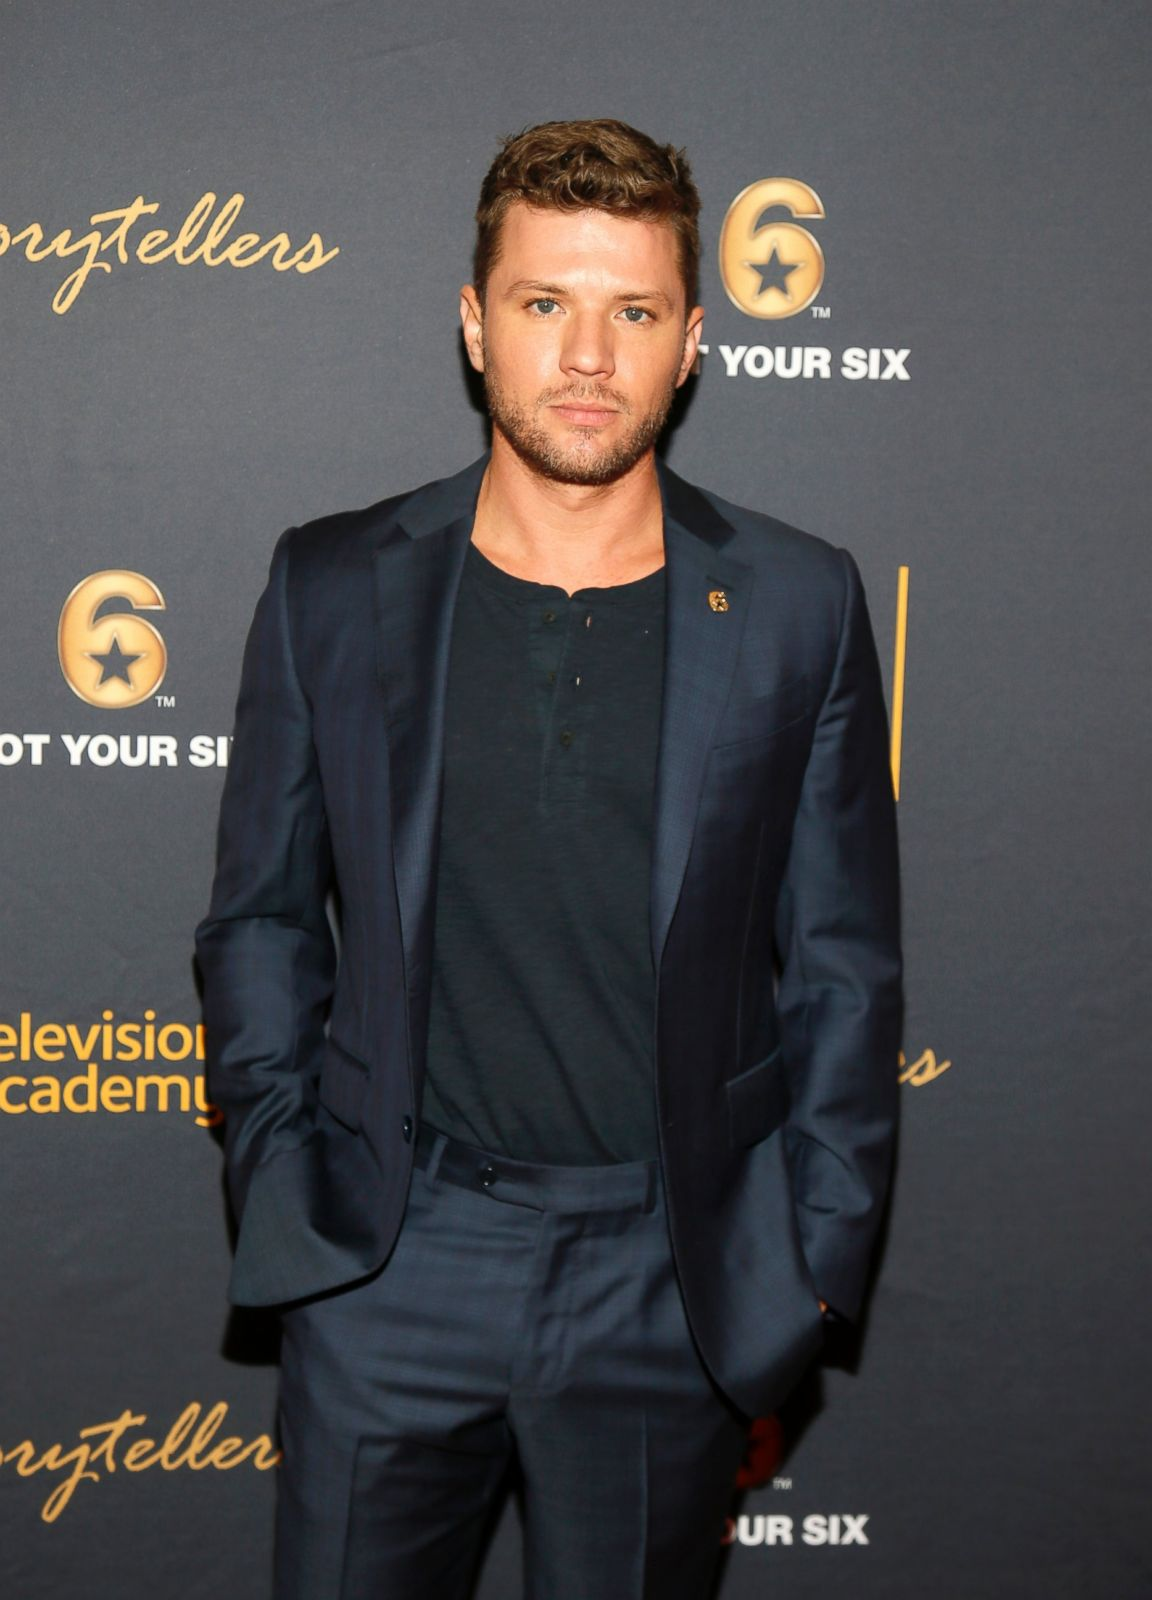 Ryan Phillippe Picture | November Top Celebrity Pictures ... Ryan Phillippe